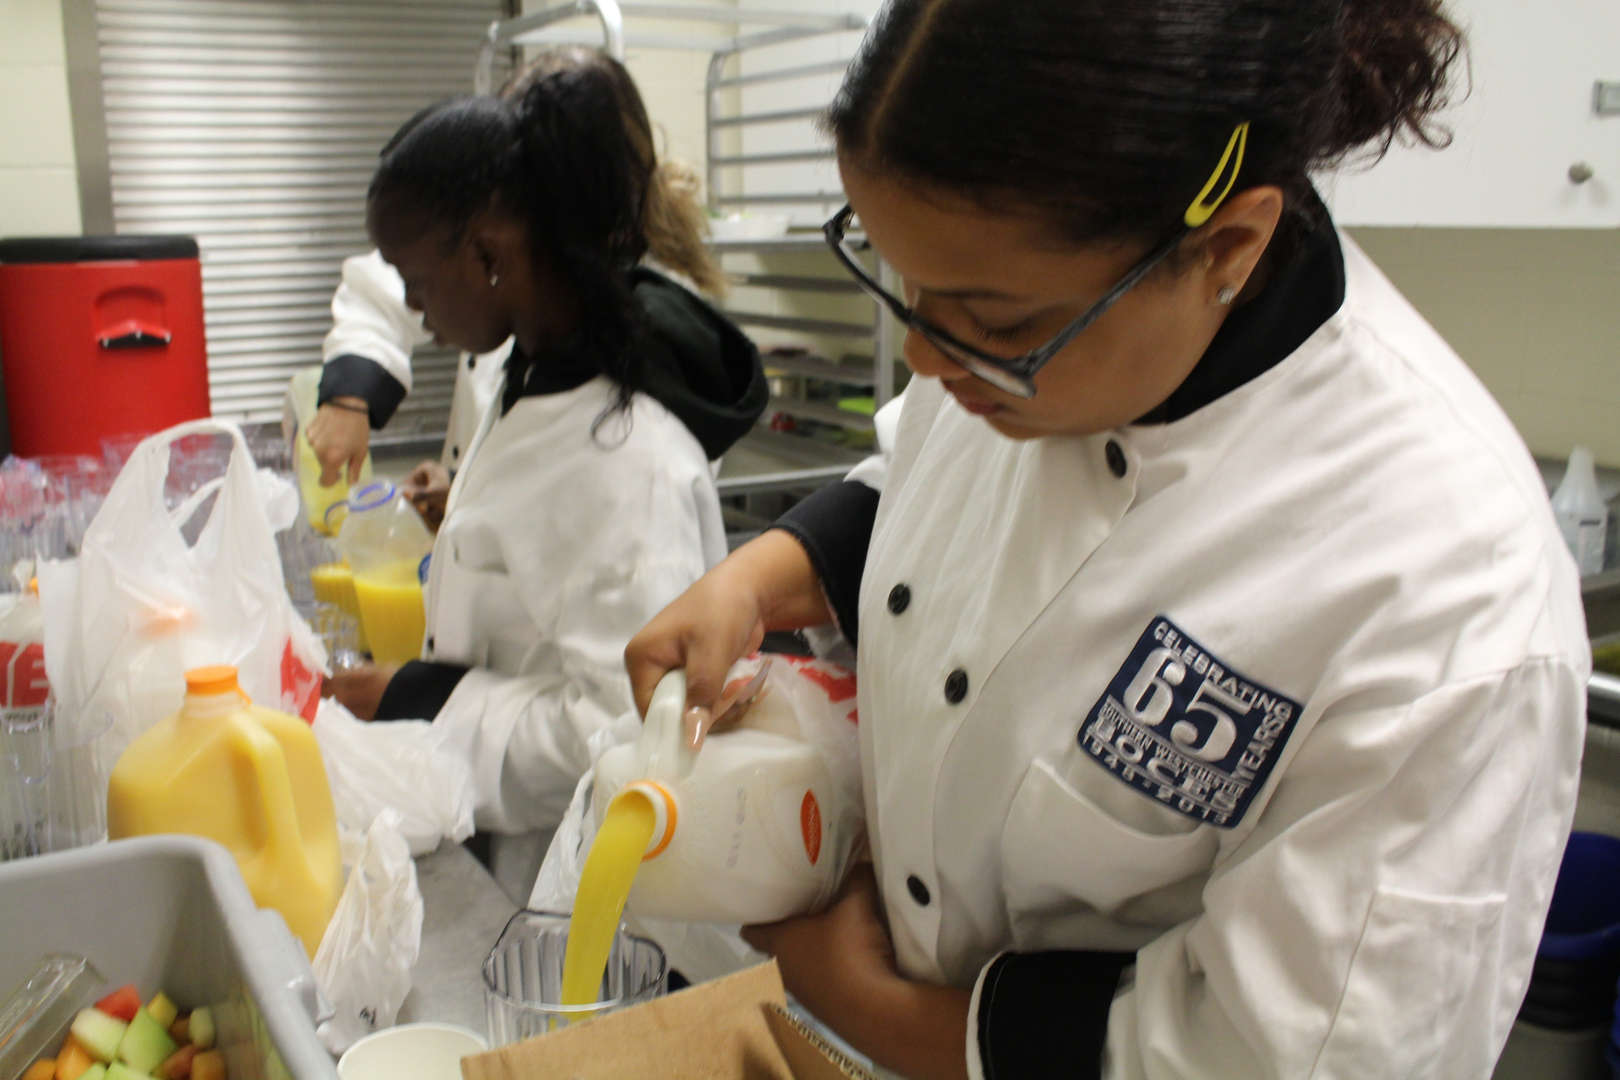 Culinary students pour orance juice